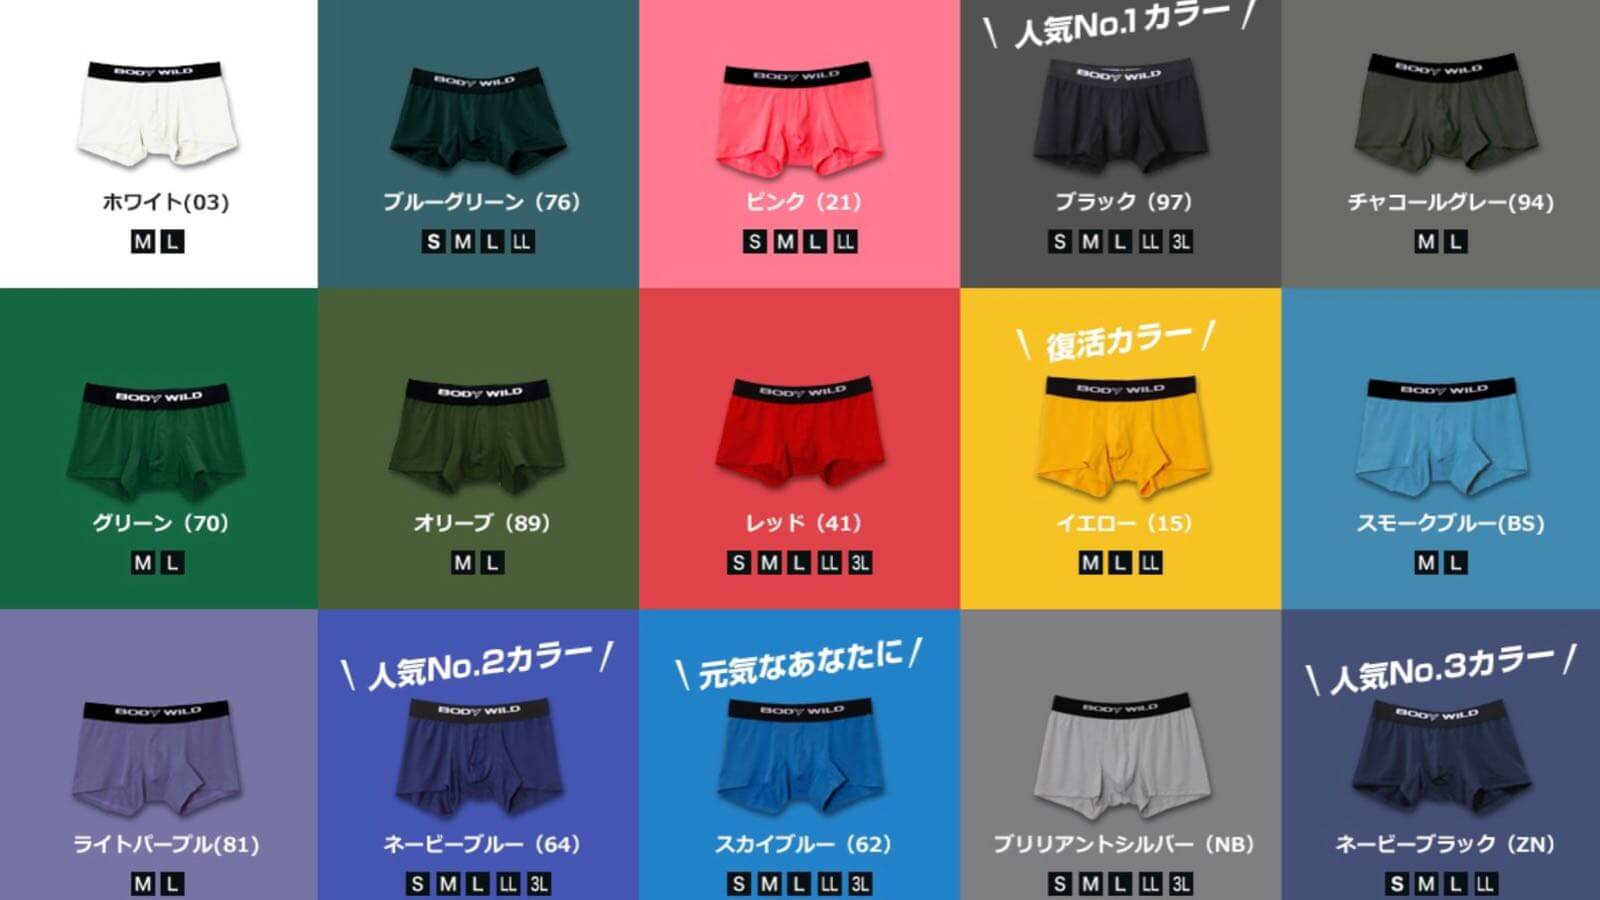 0122 Fashionable underwear BODY WILD is recommended 05